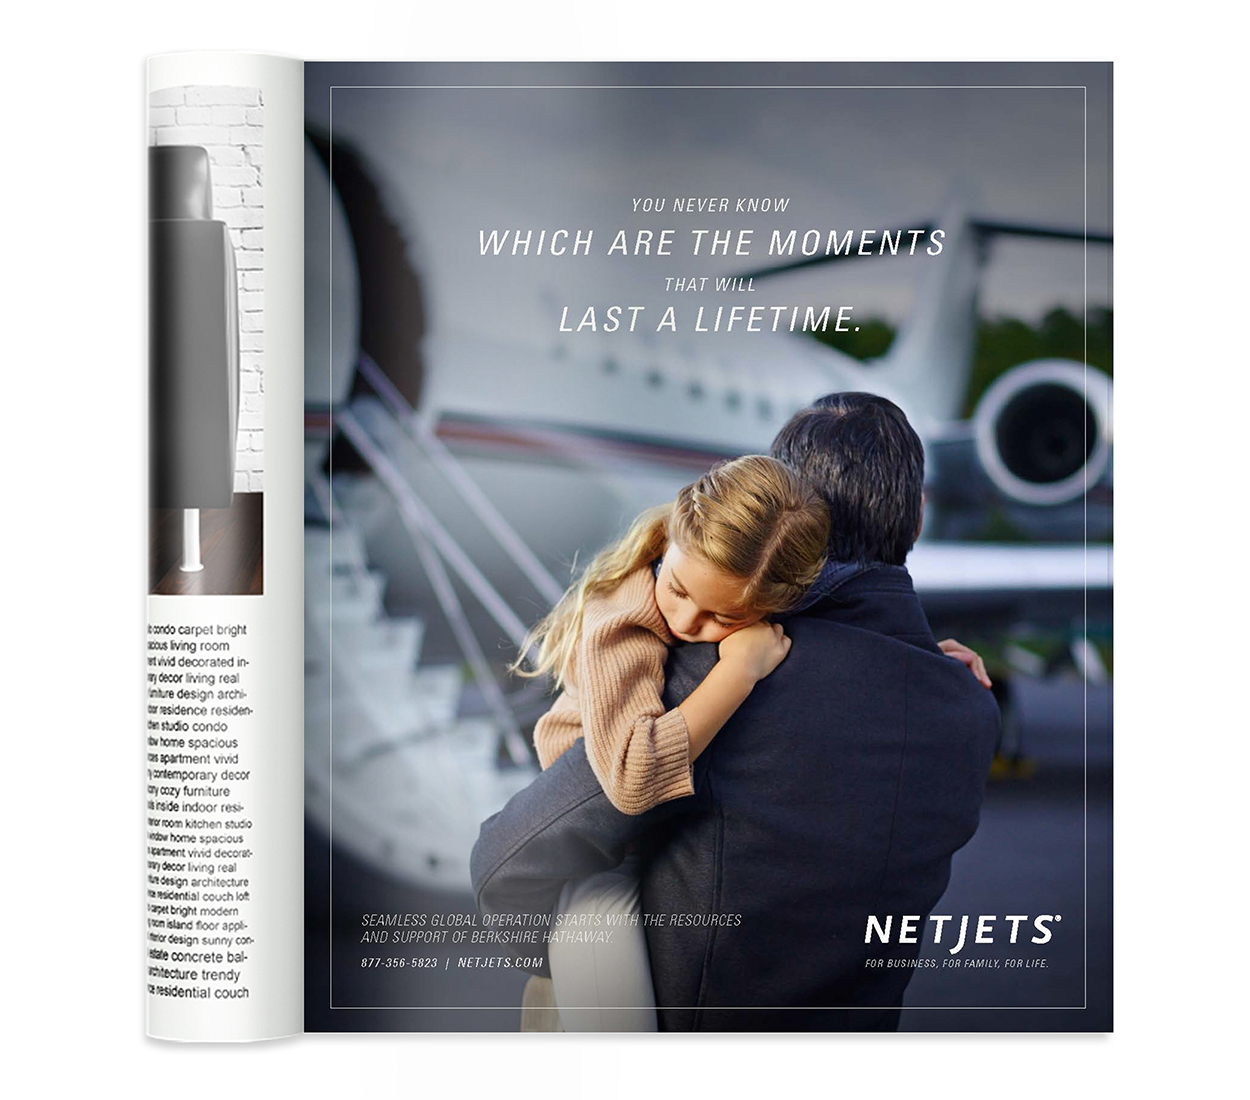 NetJets_Ads3re_150dpi.jpg